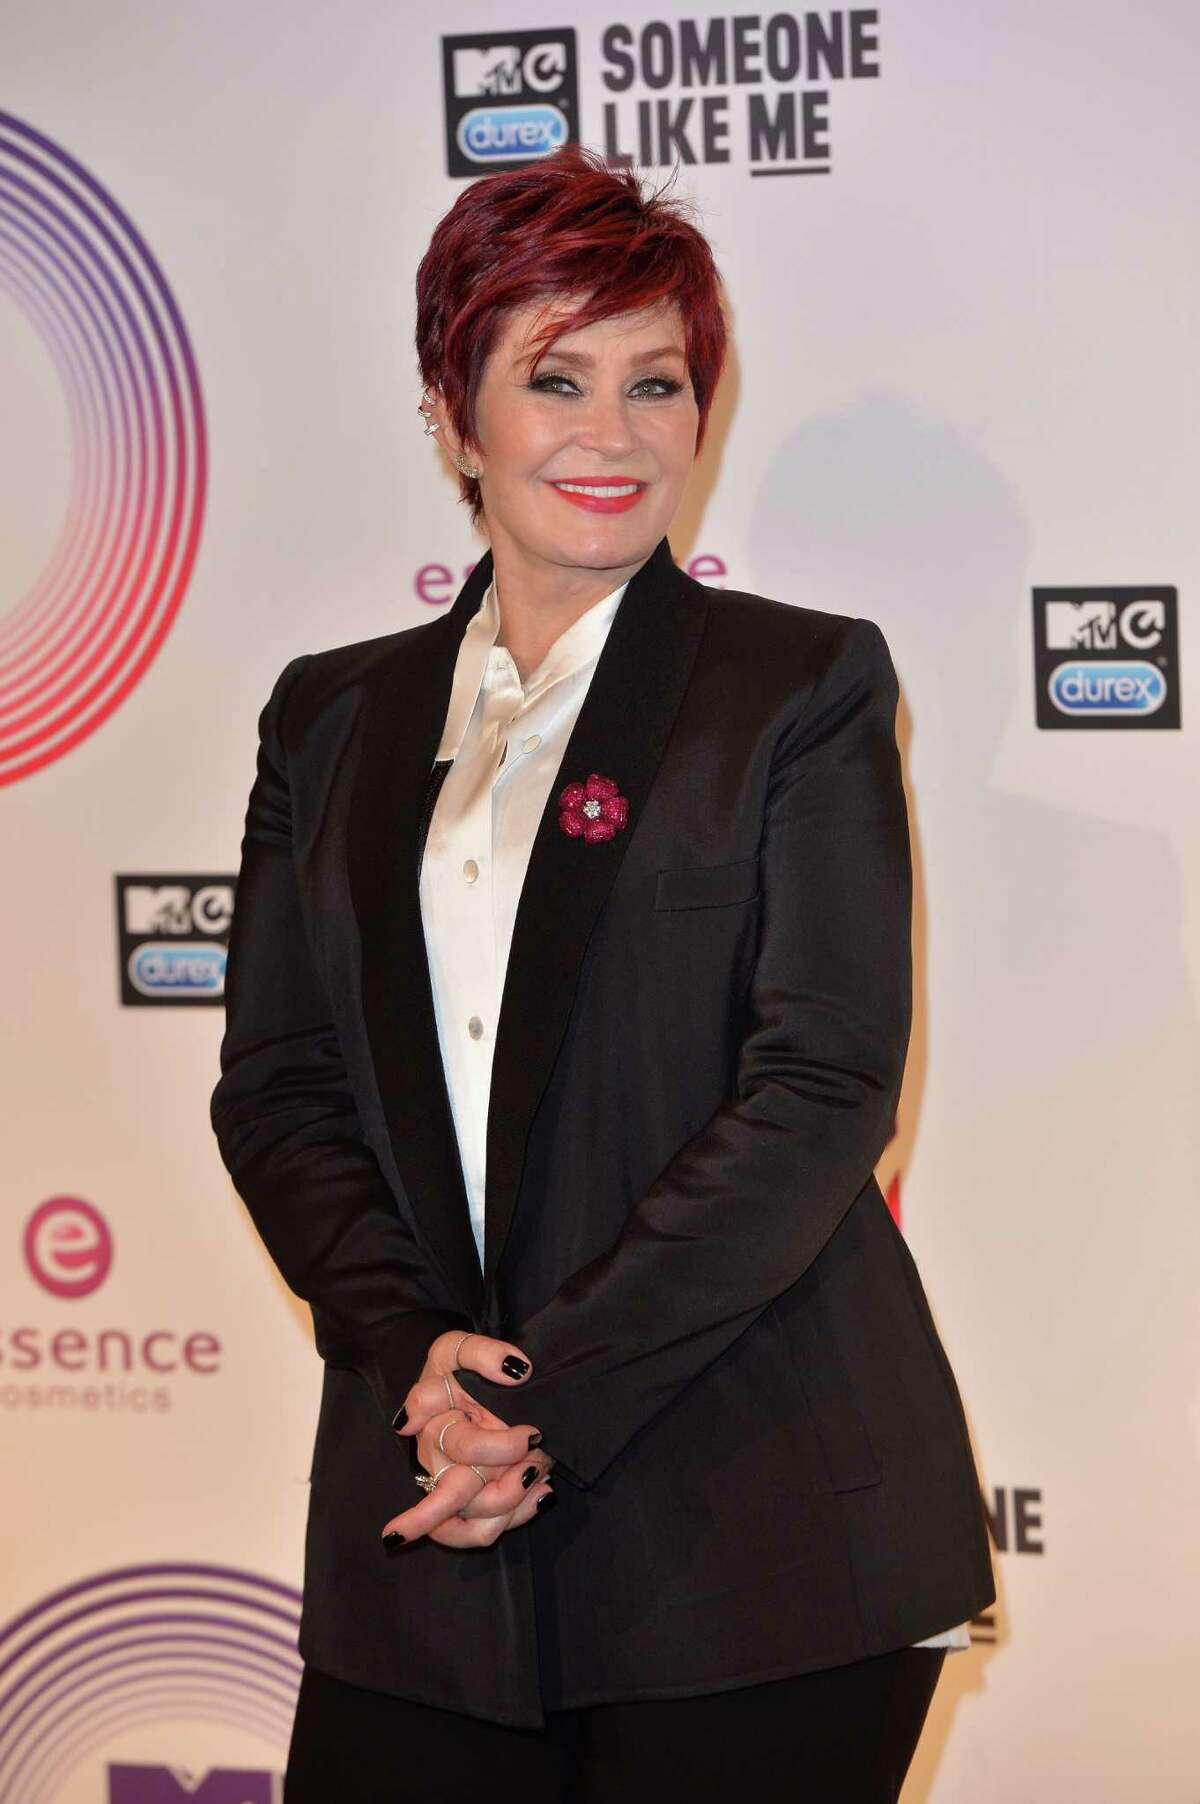 GLASGOW, SCOTLAND - NOVEMBER 09: Sharon Osbourne poses in the winners room at the MTV EMA's 2014 at The Hydro on November 9, 2014 in Glasgow, Scotland.